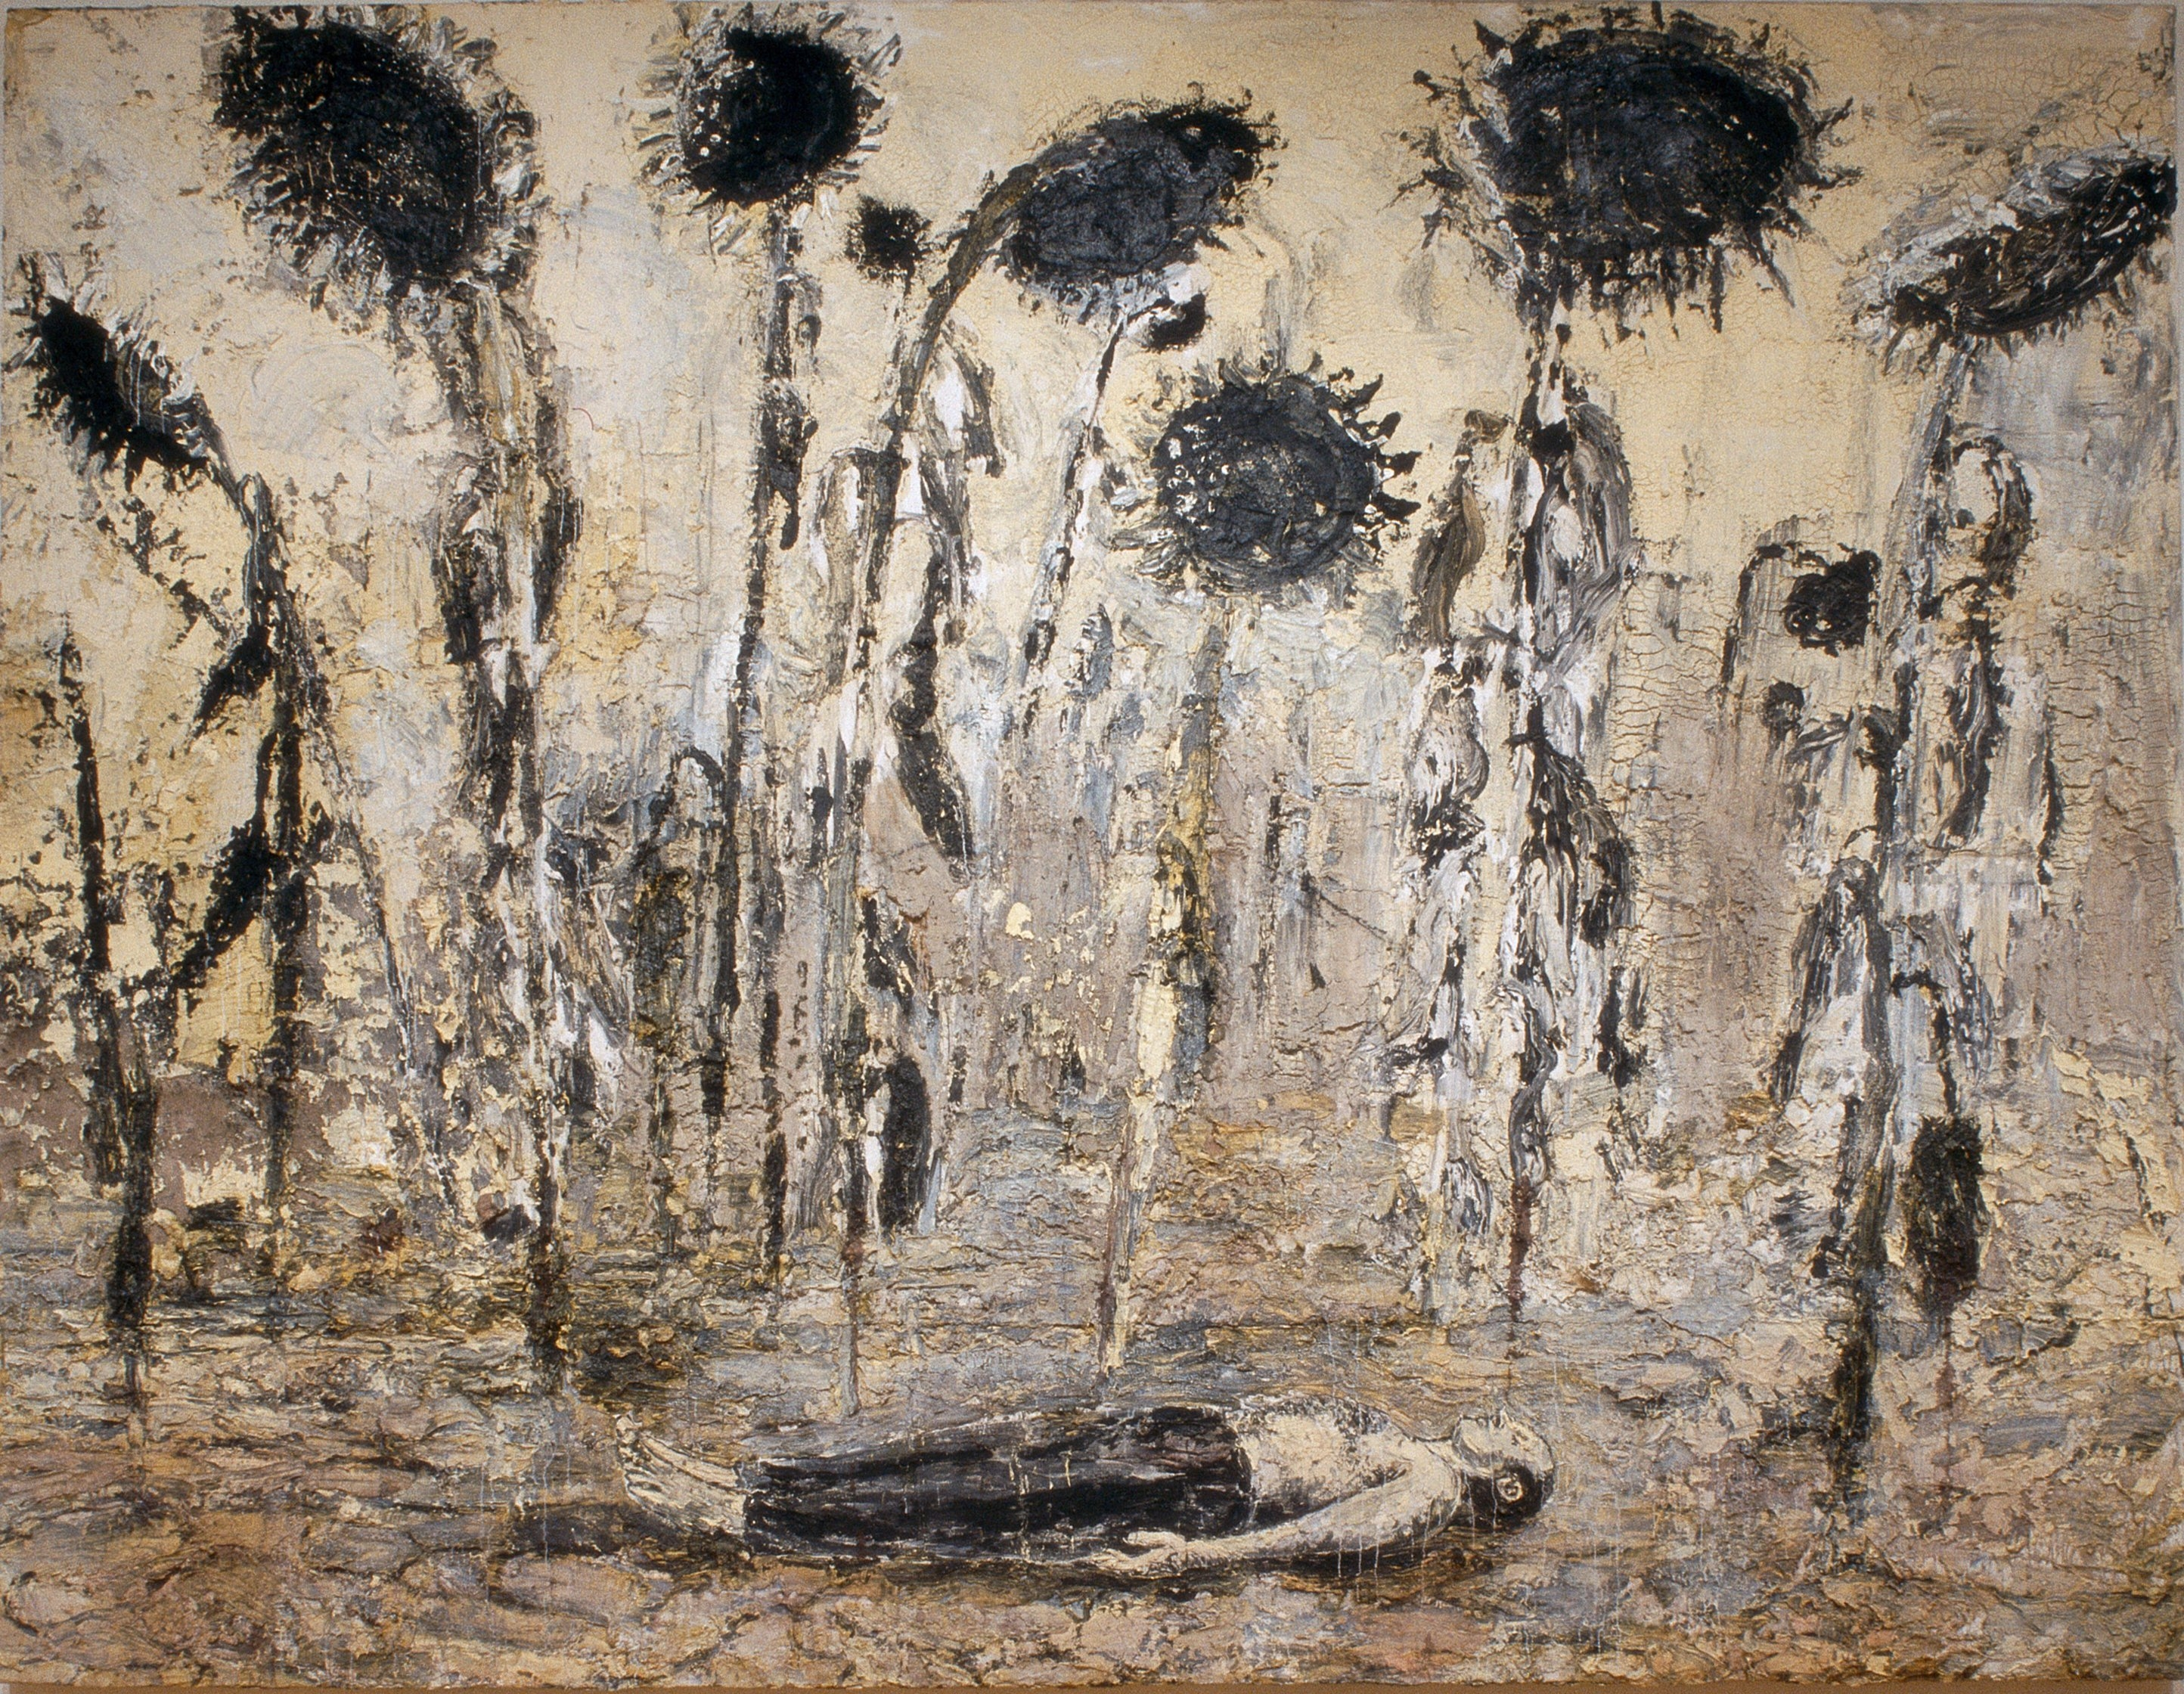 'The Orders of the Night', 1996, by Anselm Kiefer, courtesy of Royal Academy